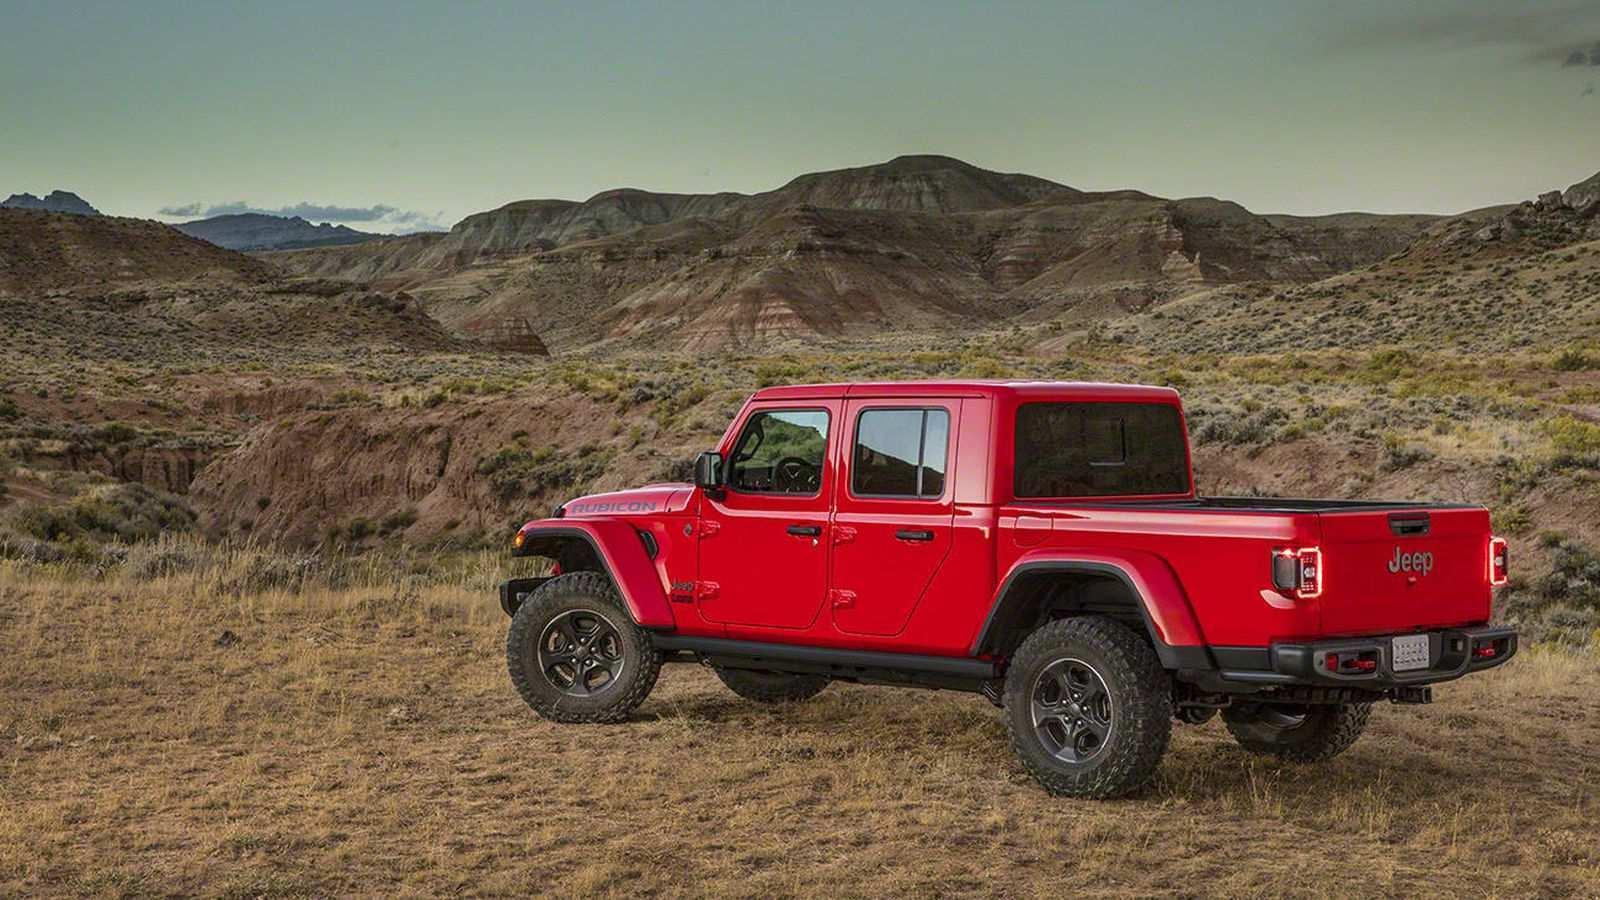 85 A Jeep Pickup Truck 2020 Review And Release Date